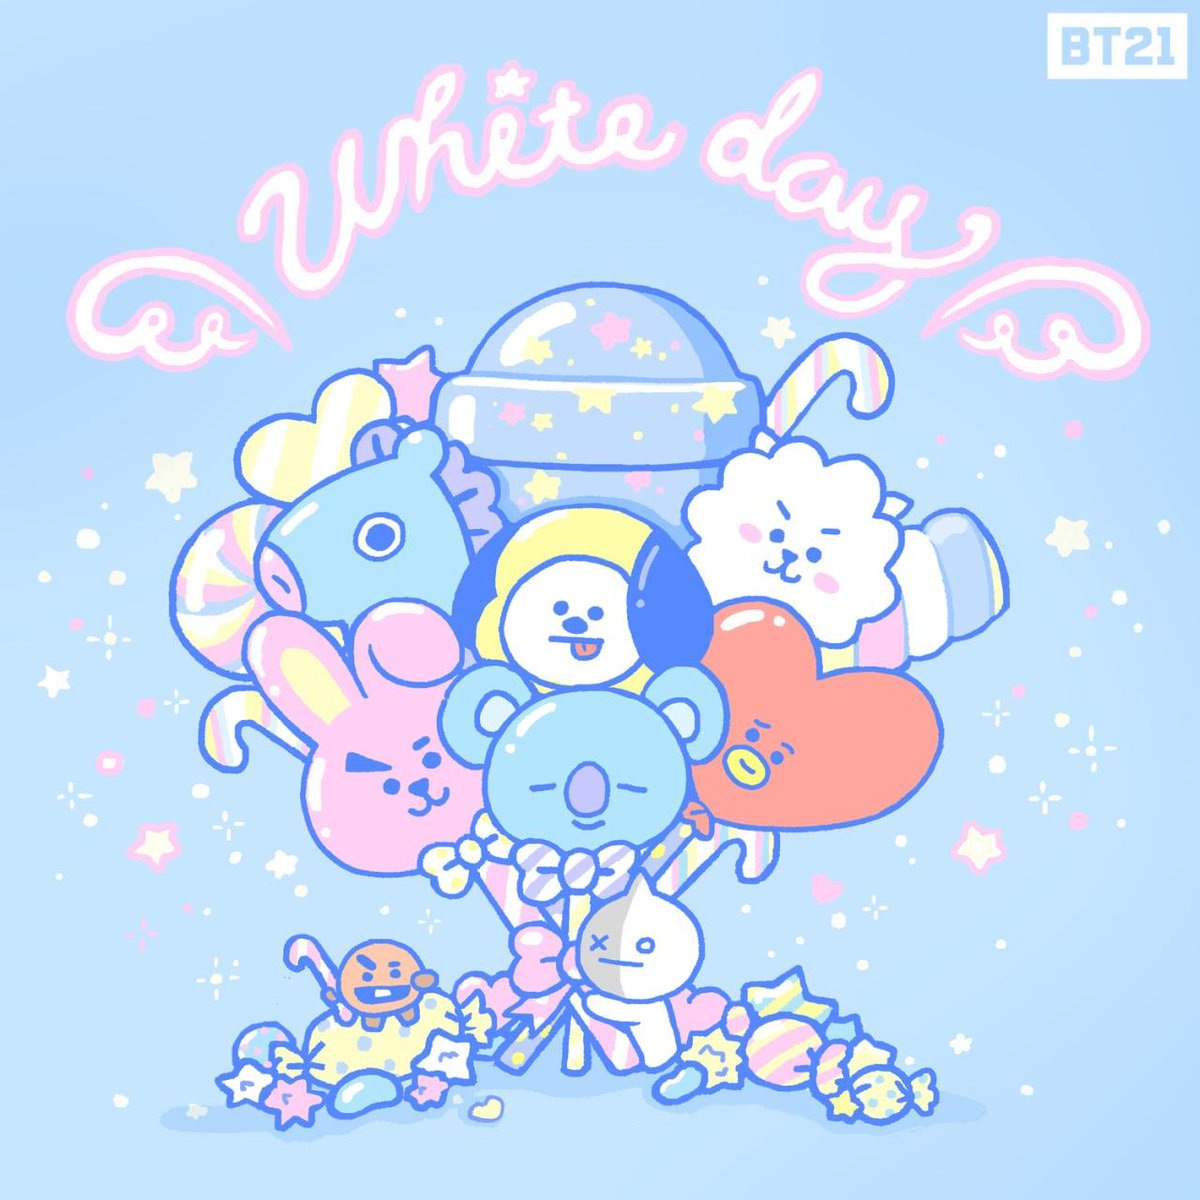 For you💐🍭🍬🍫🍡  #BT21 https://t.co/pKlAEWG...